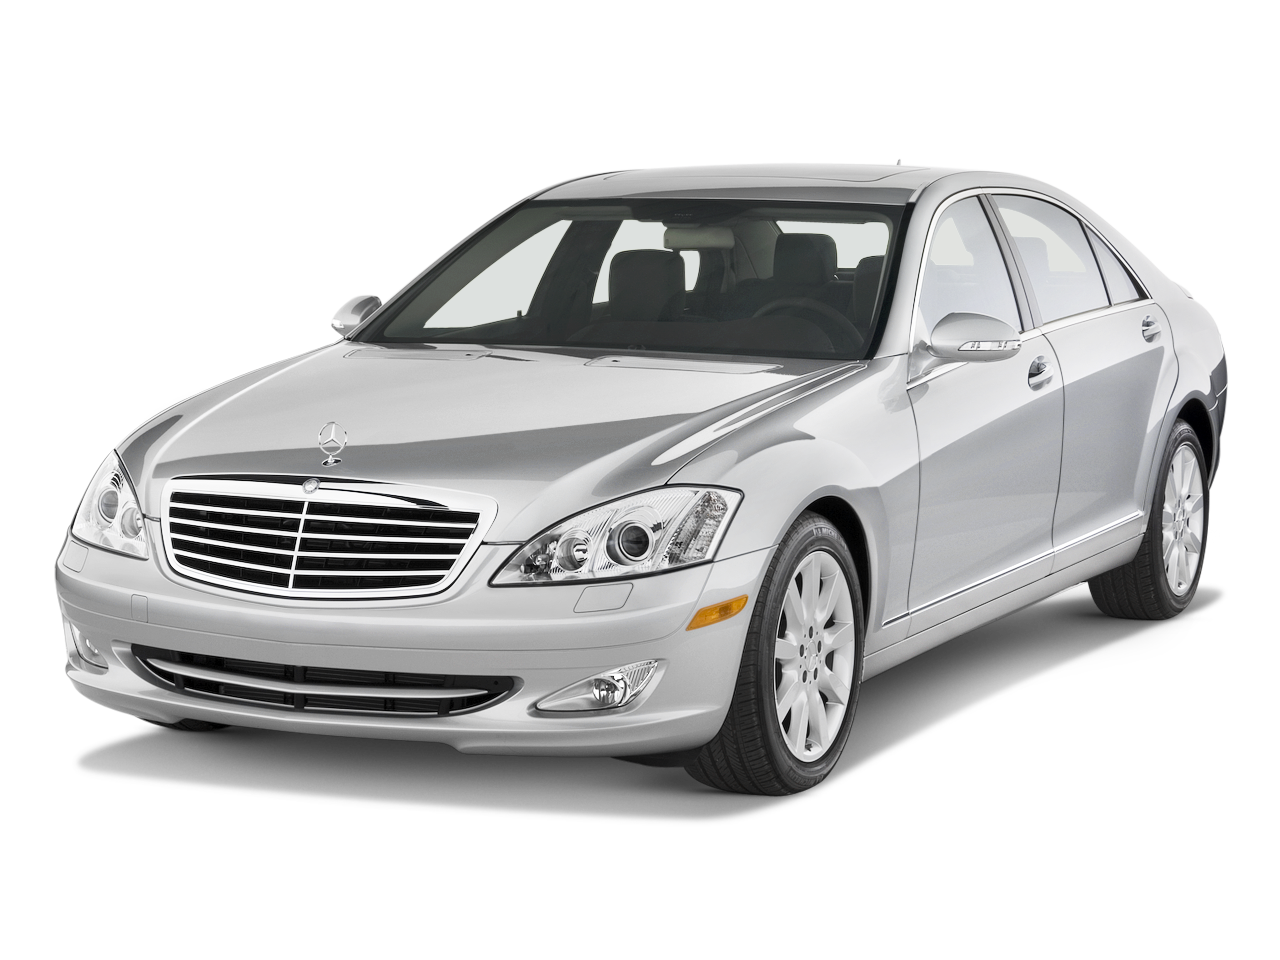 2009 Mercedes Benz S550 4Matic - Mercedes Benz Luxury AWD ...